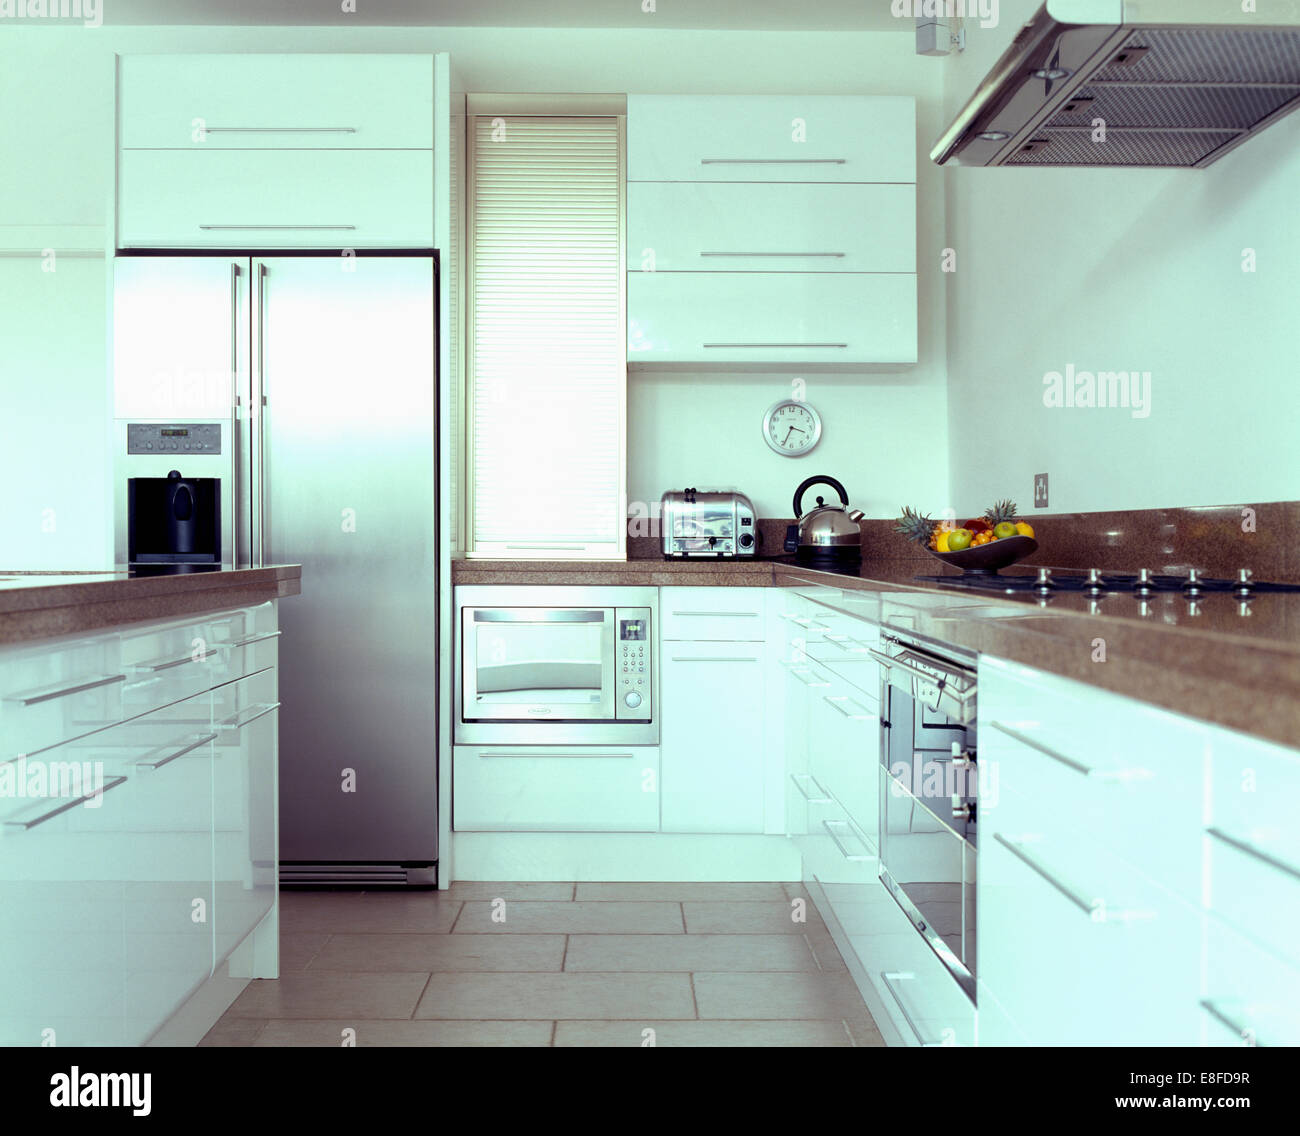 Modern Kitchen Microwave: Modern White Kitchen With Microwave Oven In Fitted Unit